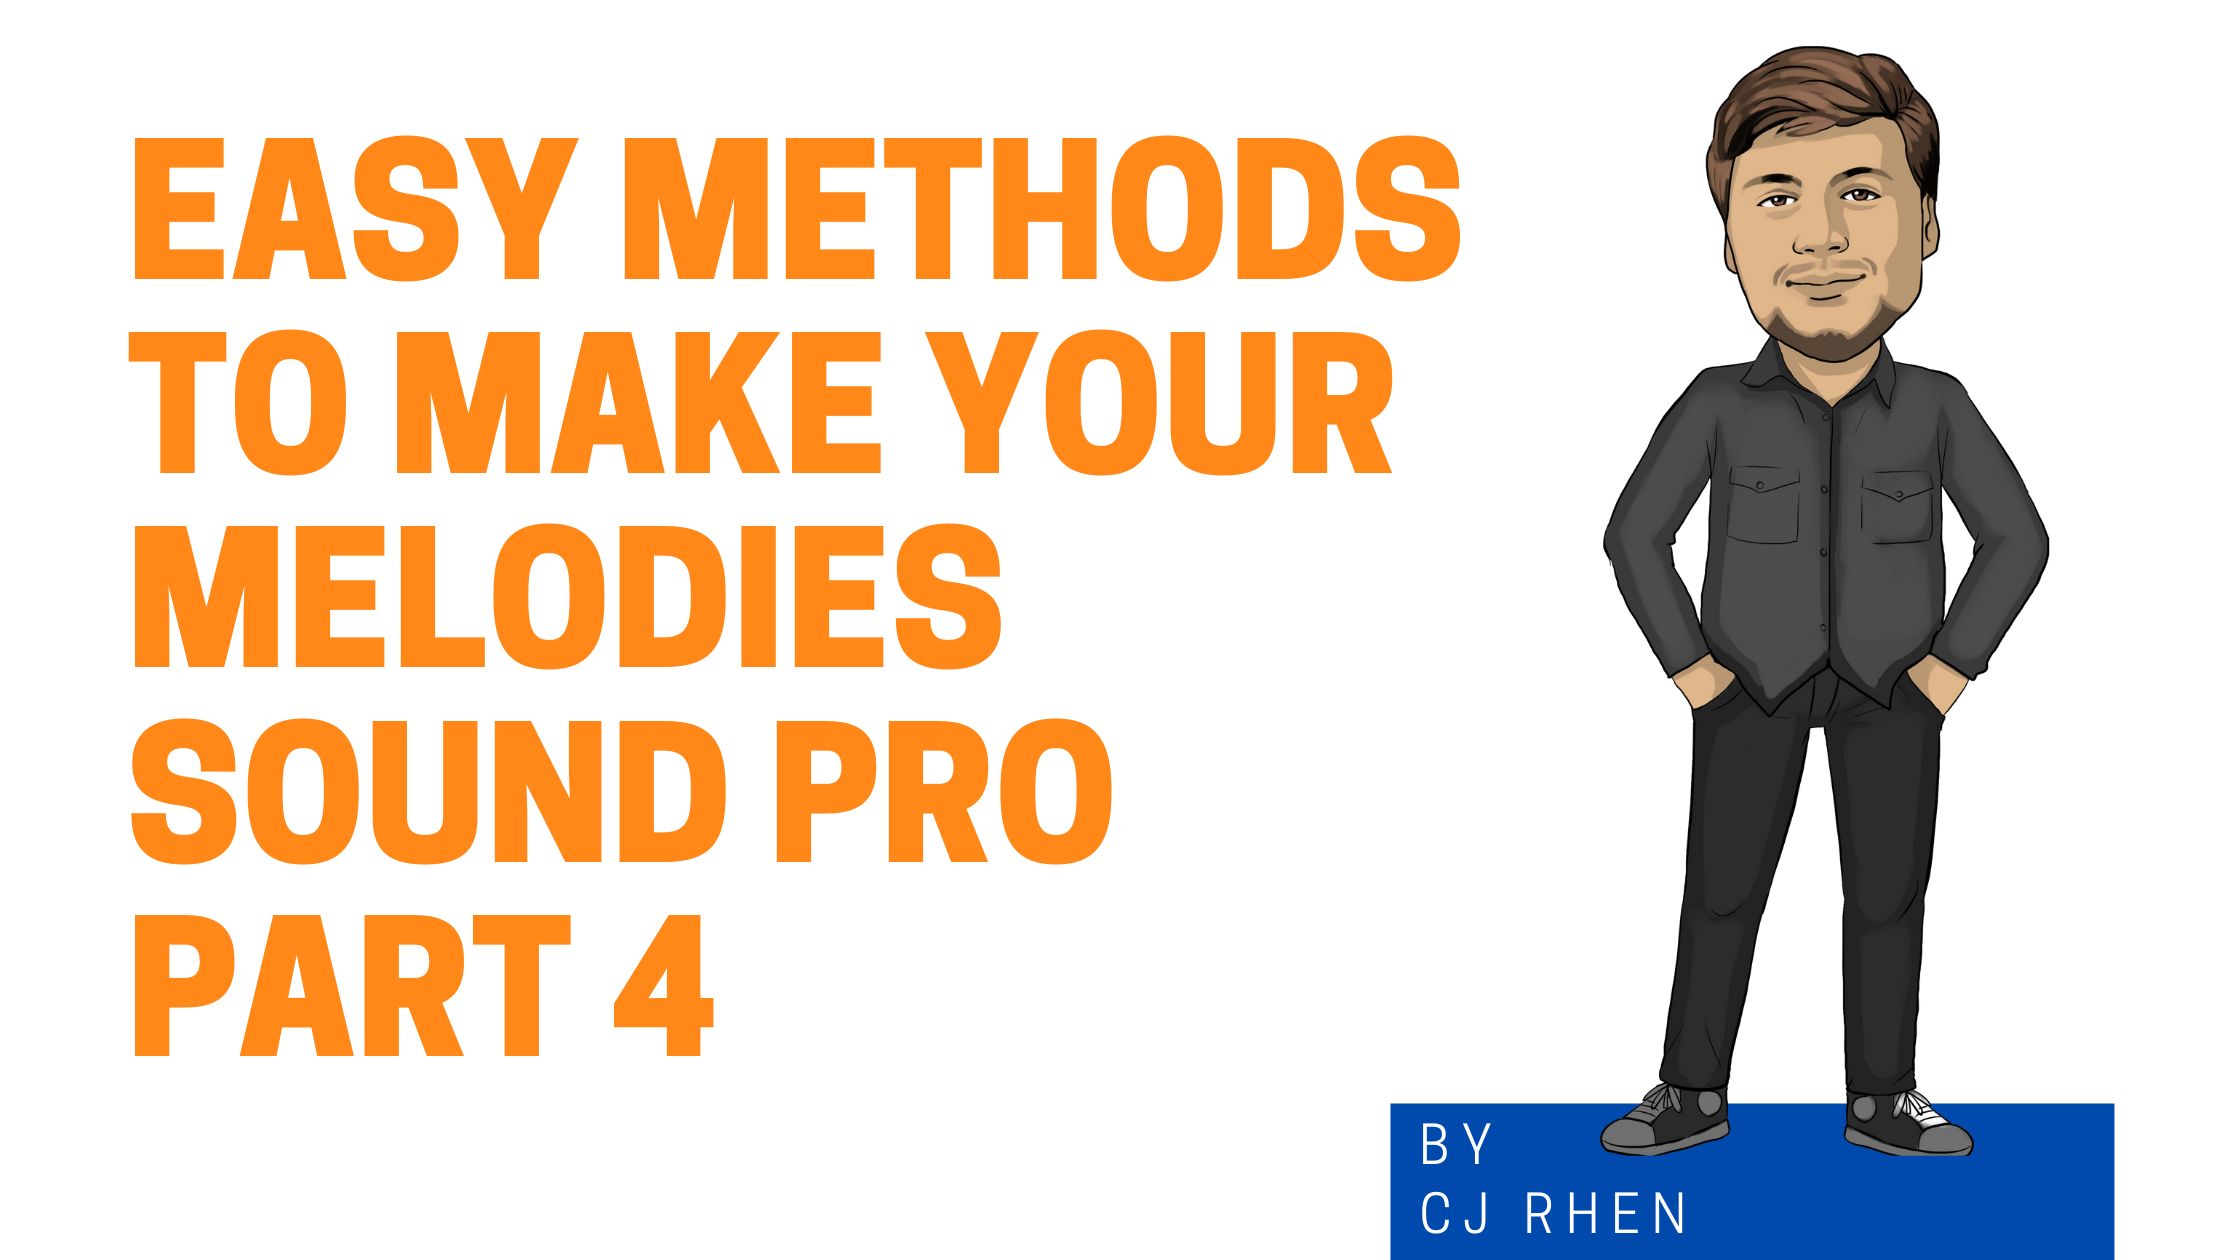 Easy Methods to Make Your Melodies Sound Pro 4 graphic with cartoon version of CJ